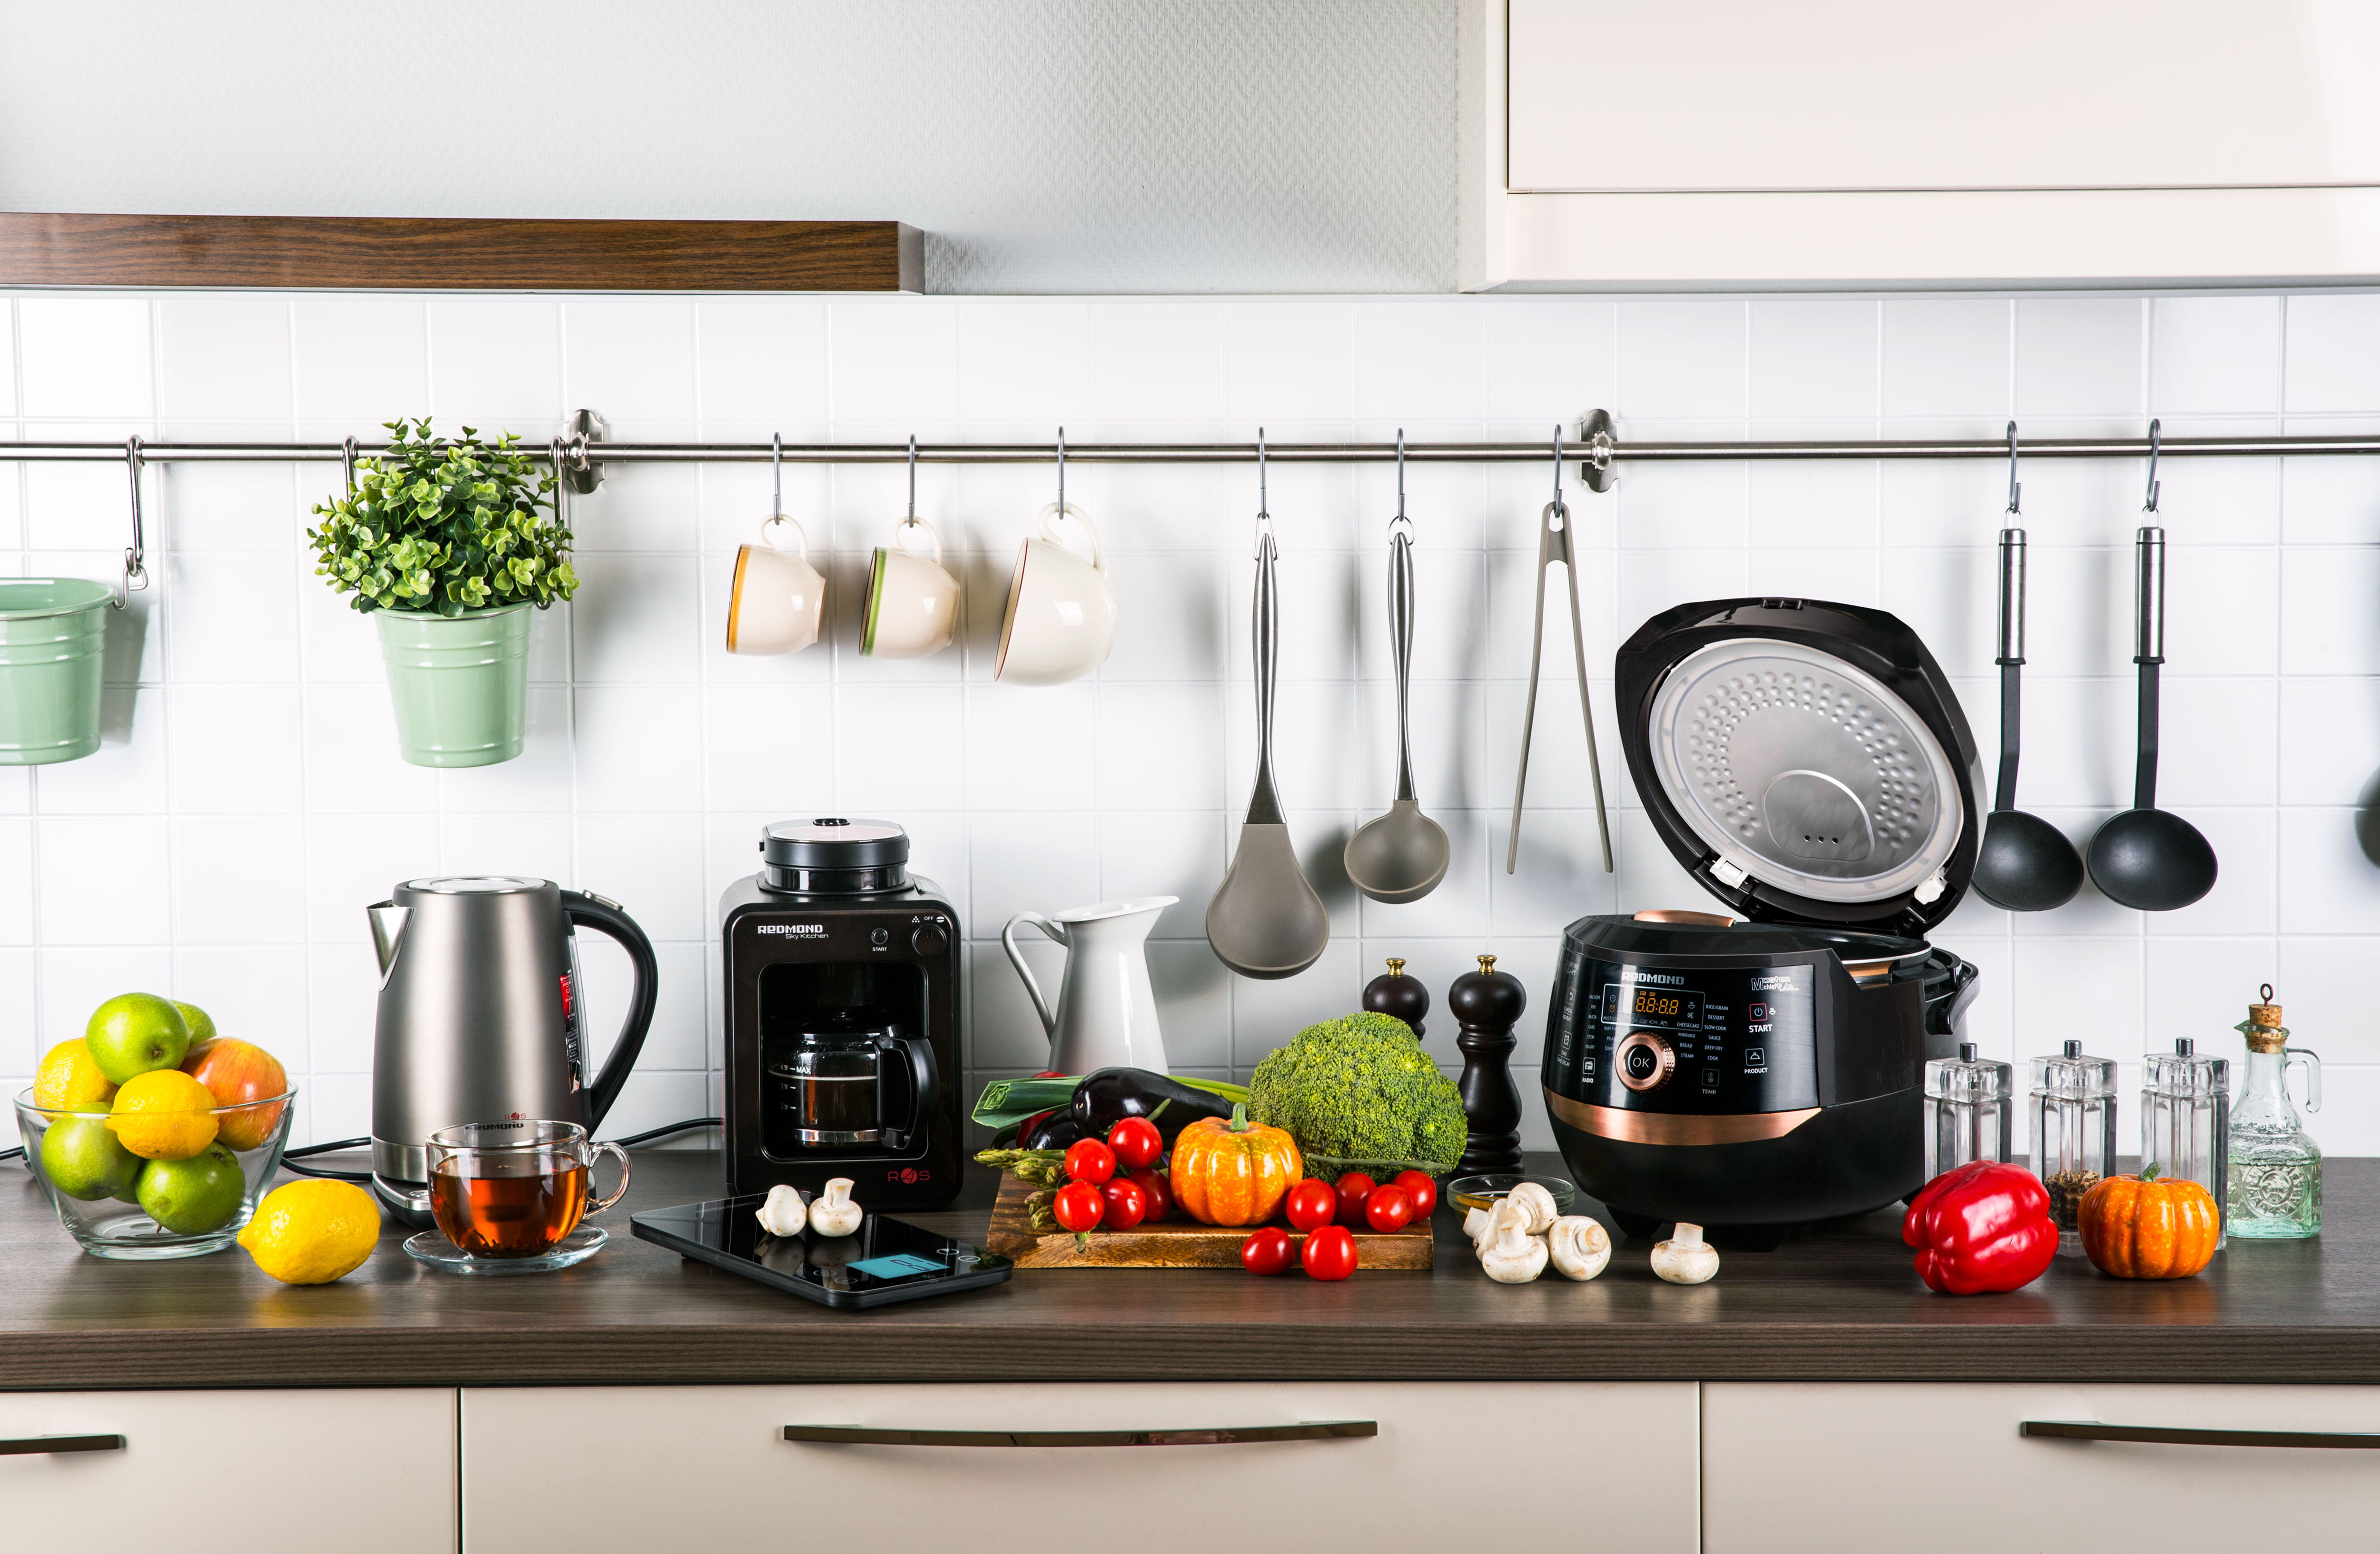 REDMOND, the leader in modern appliances and cutting-edge technology, is announcing the launch of its Sky line-up.